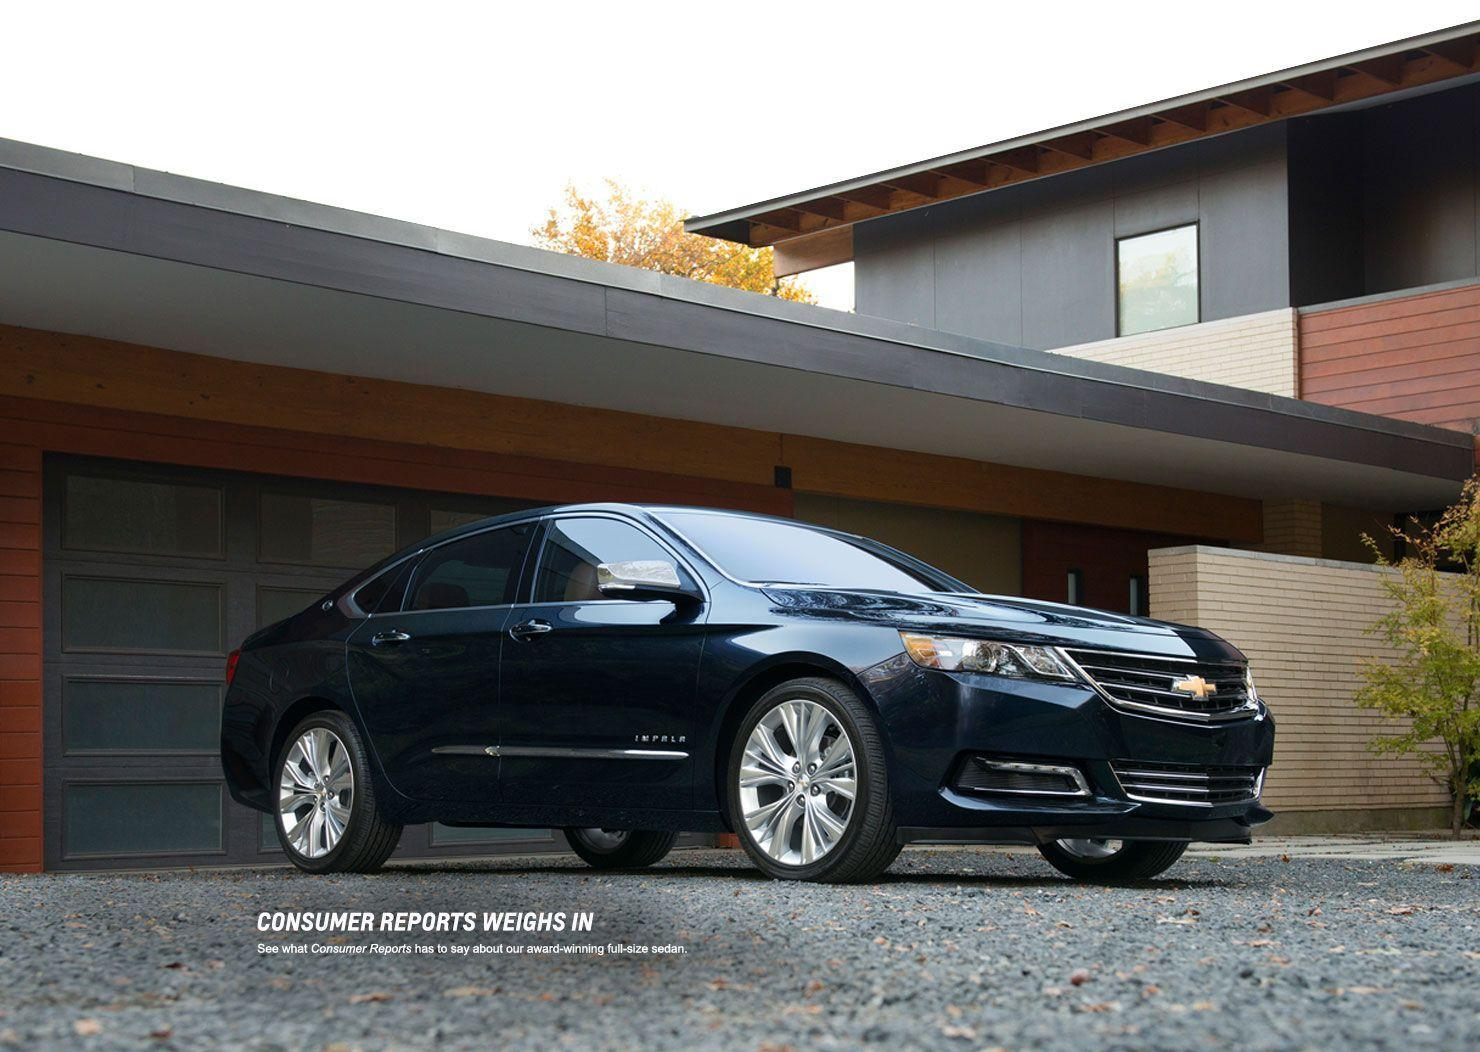 2015 Chevrolet Impala Wallpapers Widescreen HD